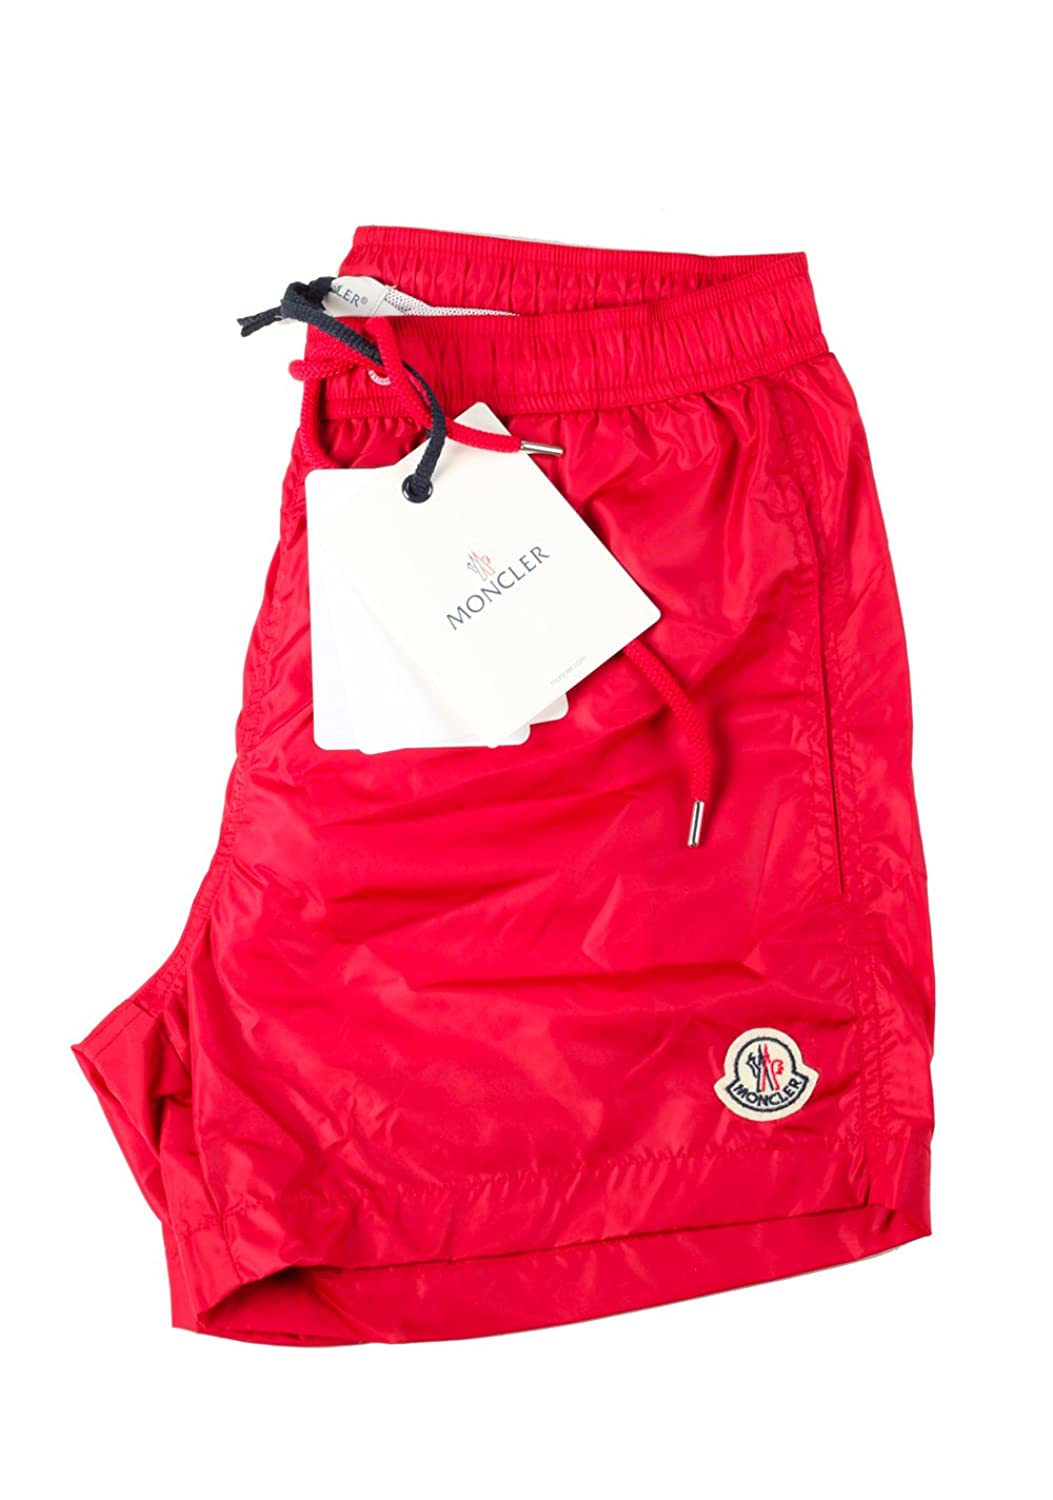 CL - Moncler Swim Trunks Size XXL / 40 U.S. Red